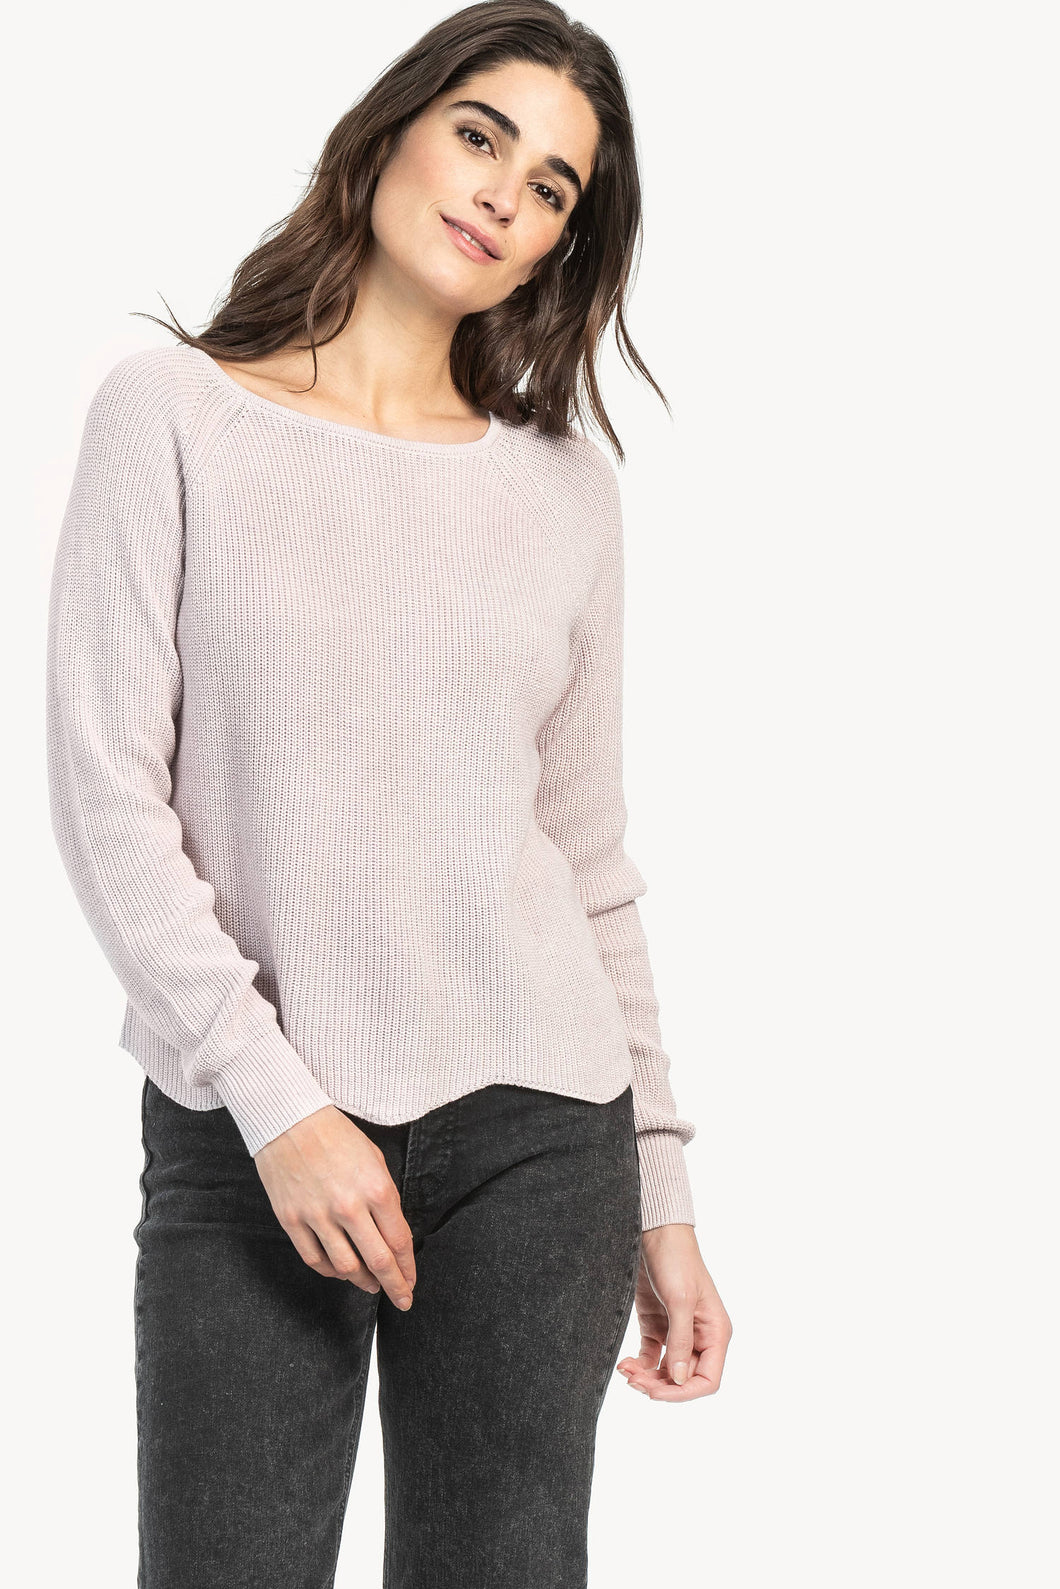 Lilla P SCALLOPED PULLOVER